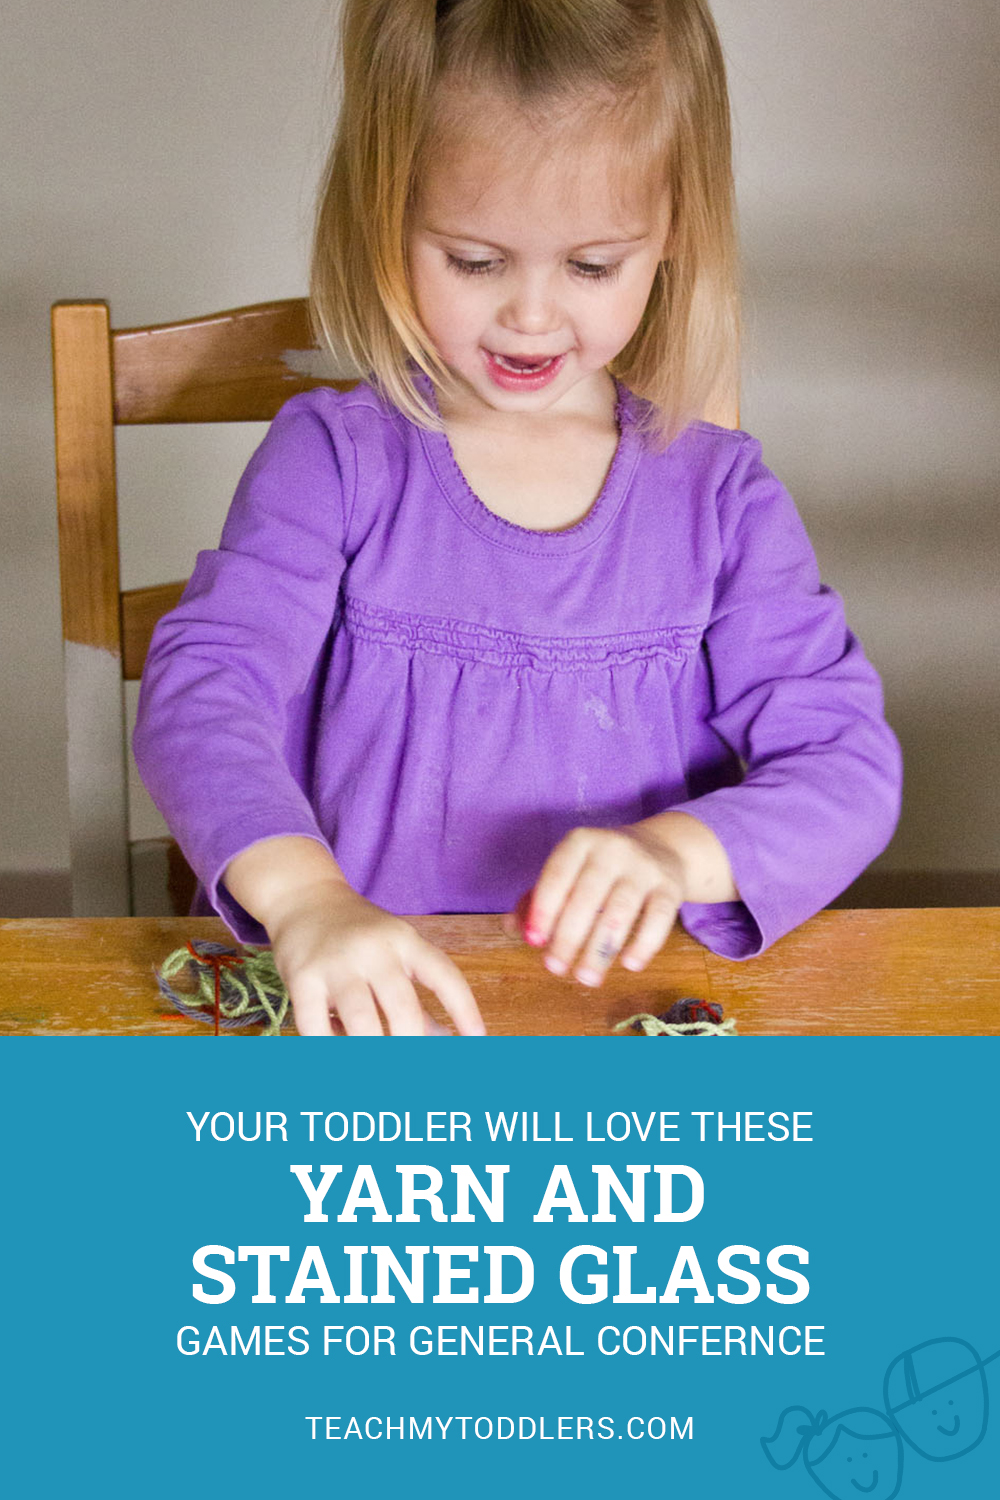 Yarn and stained glass activities for your succulent to play with during General Conference!